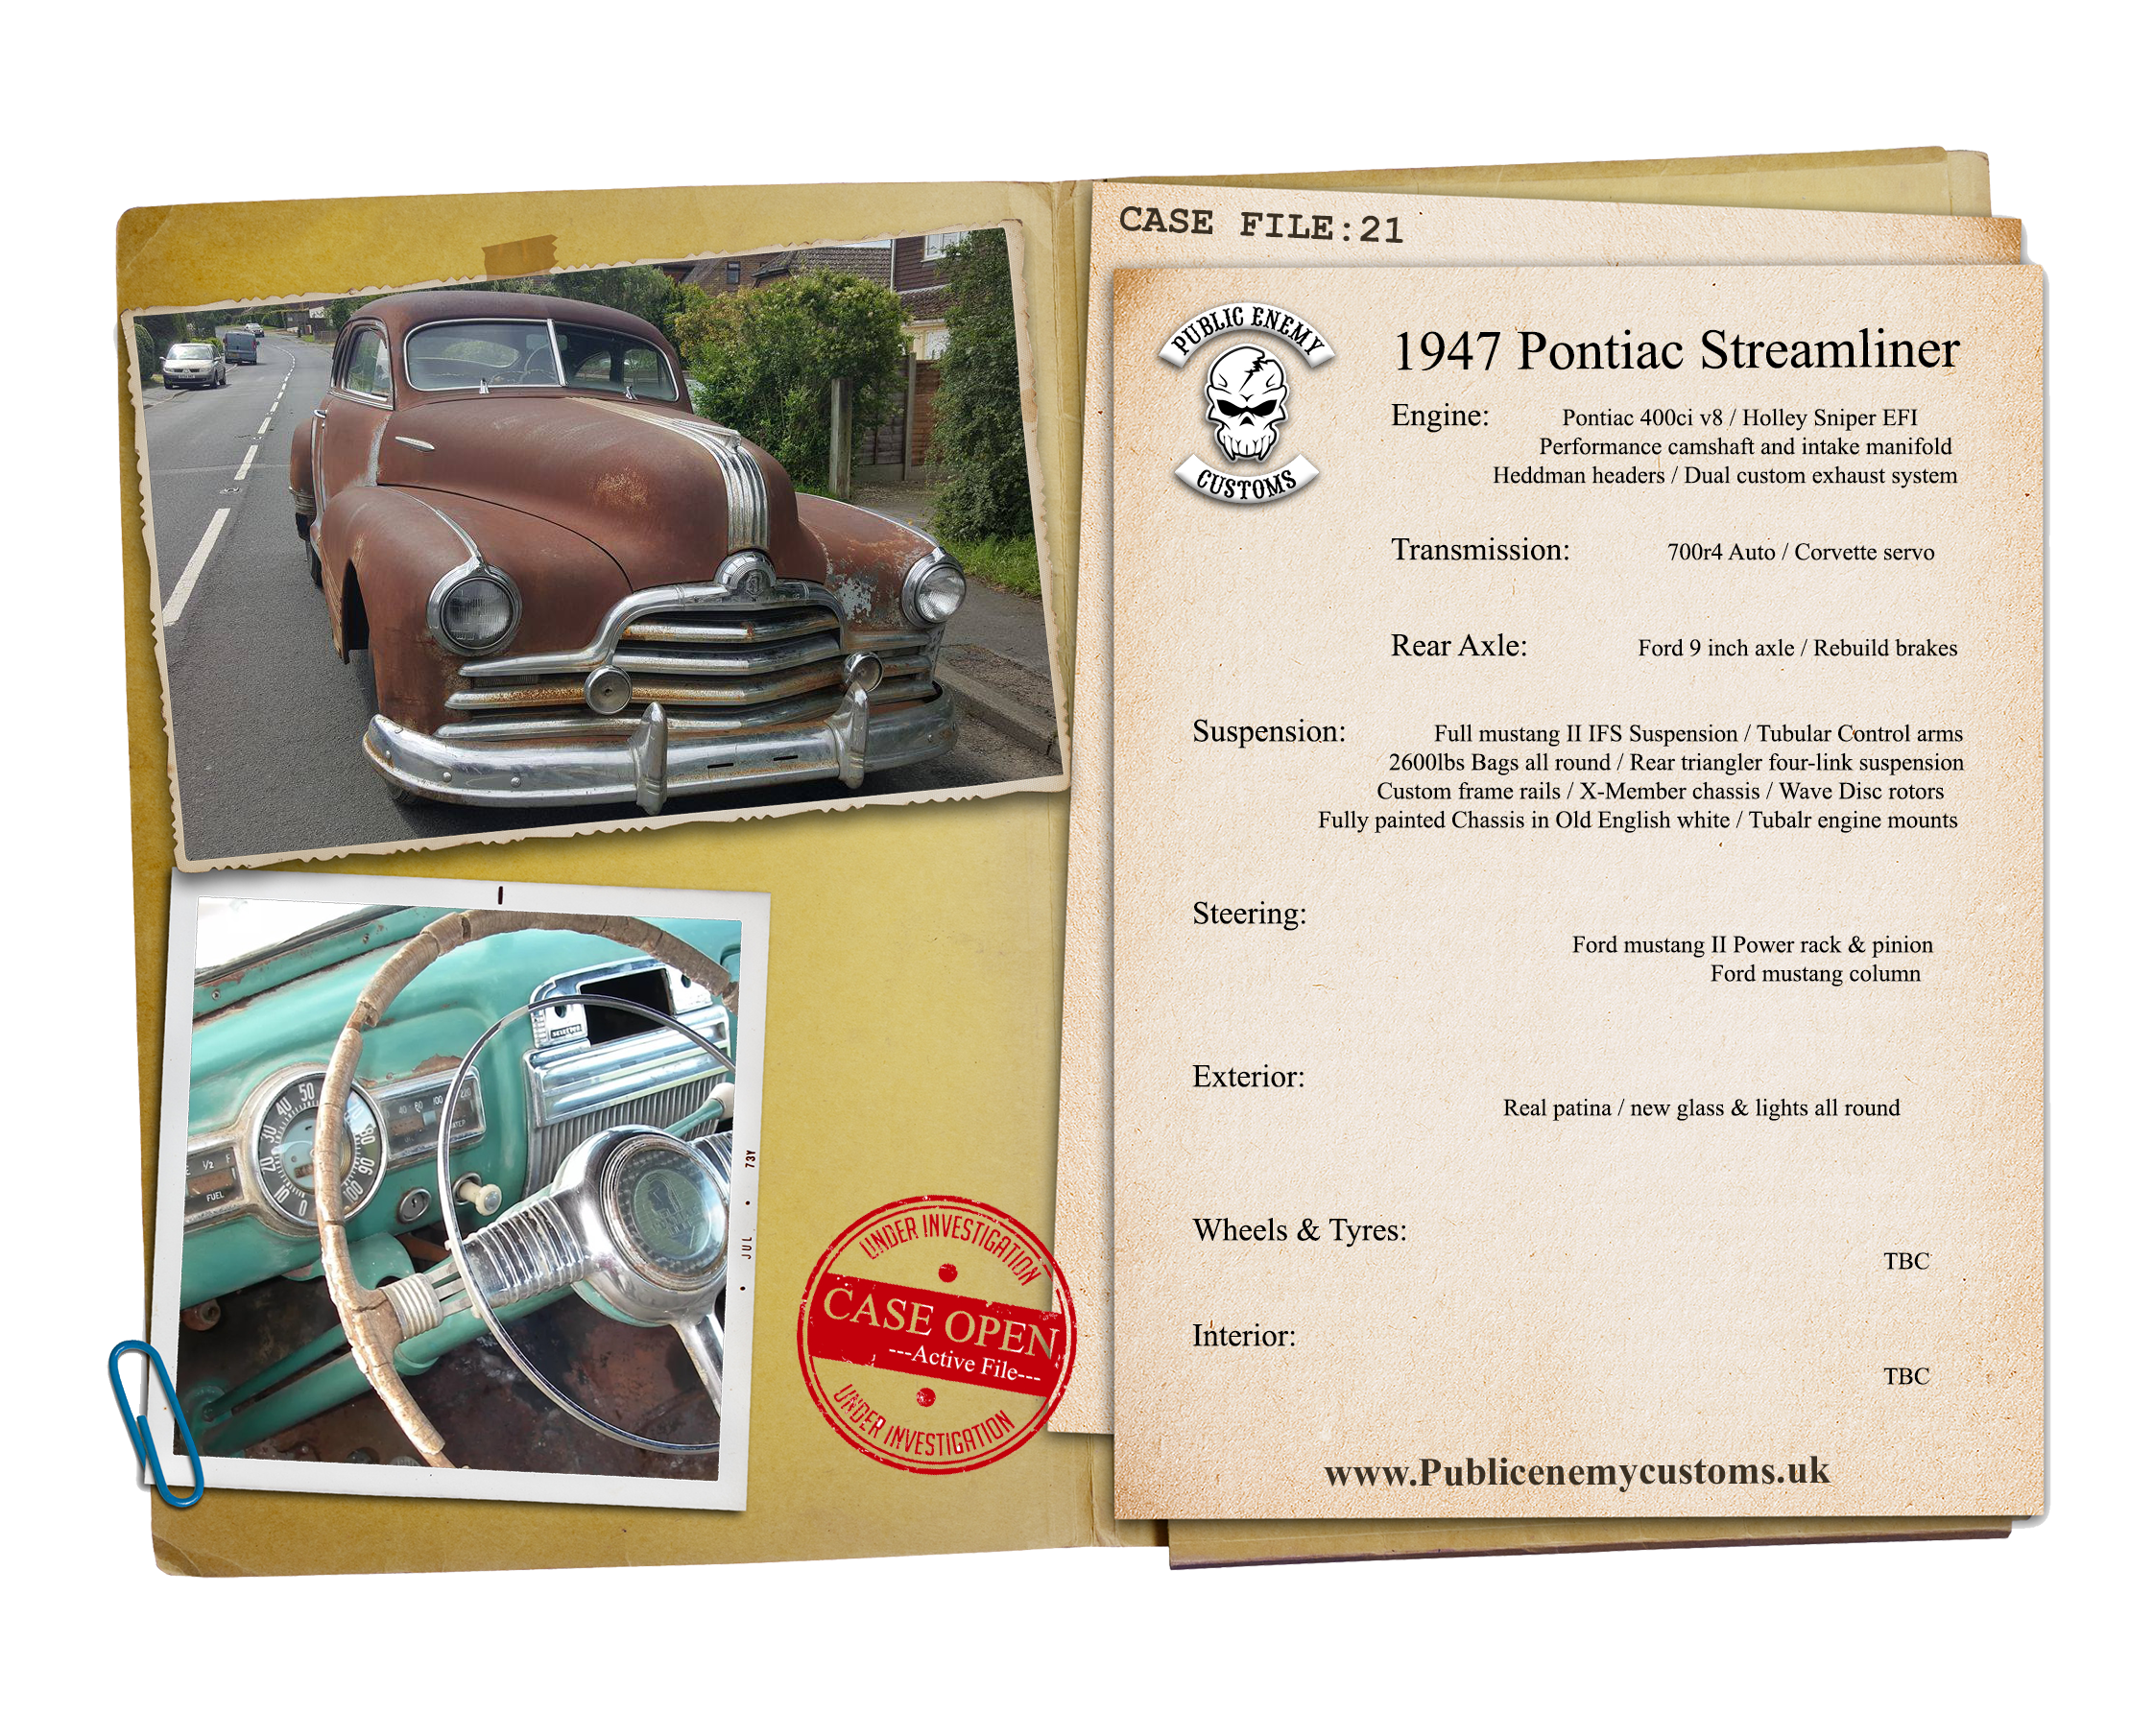 Case File 21 Pontiac 1947 Streamliner